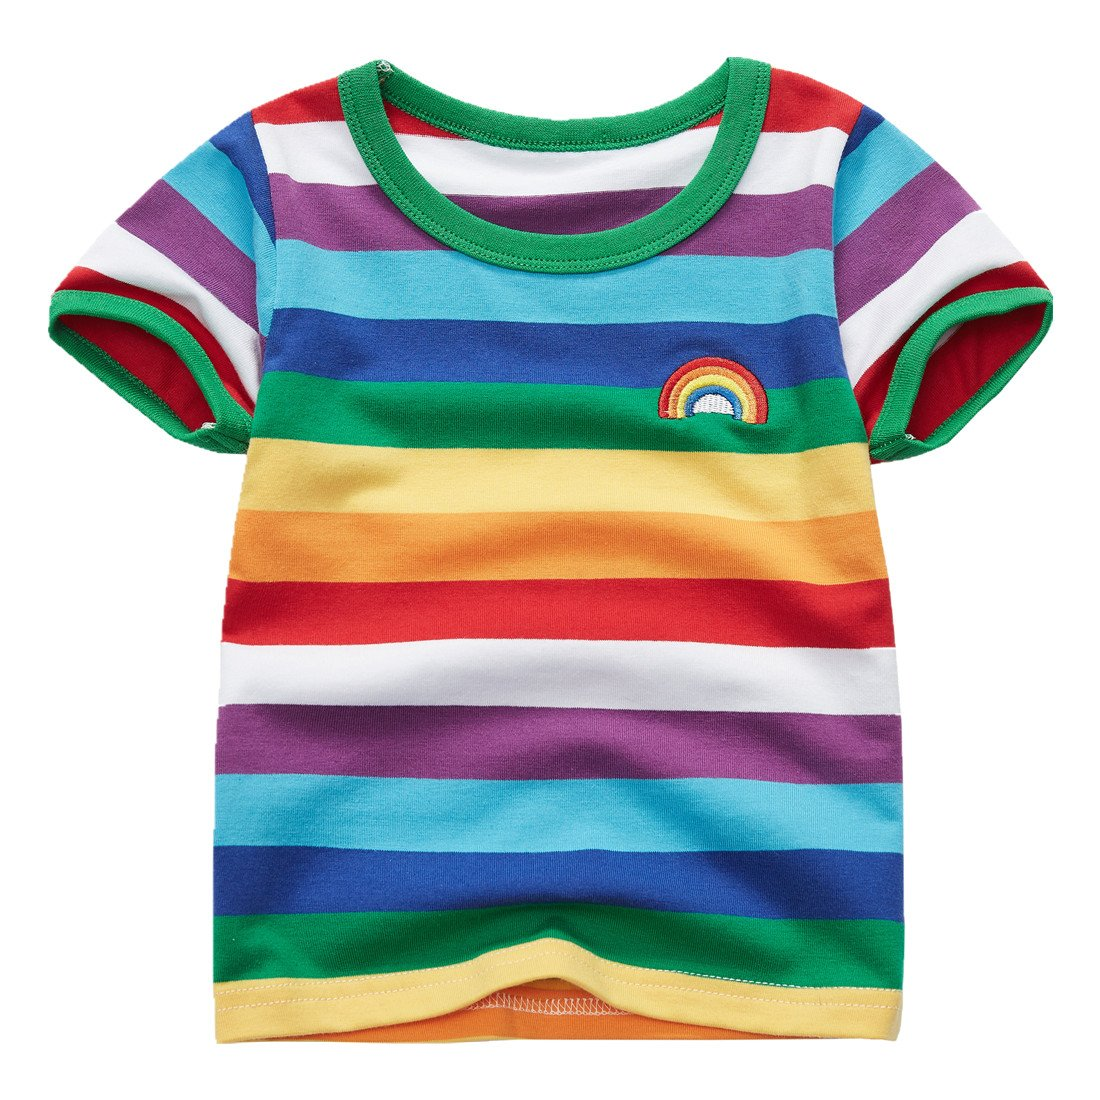 Sooxiwood Little Boys T-Shirt Rainbow Striped O-Neck